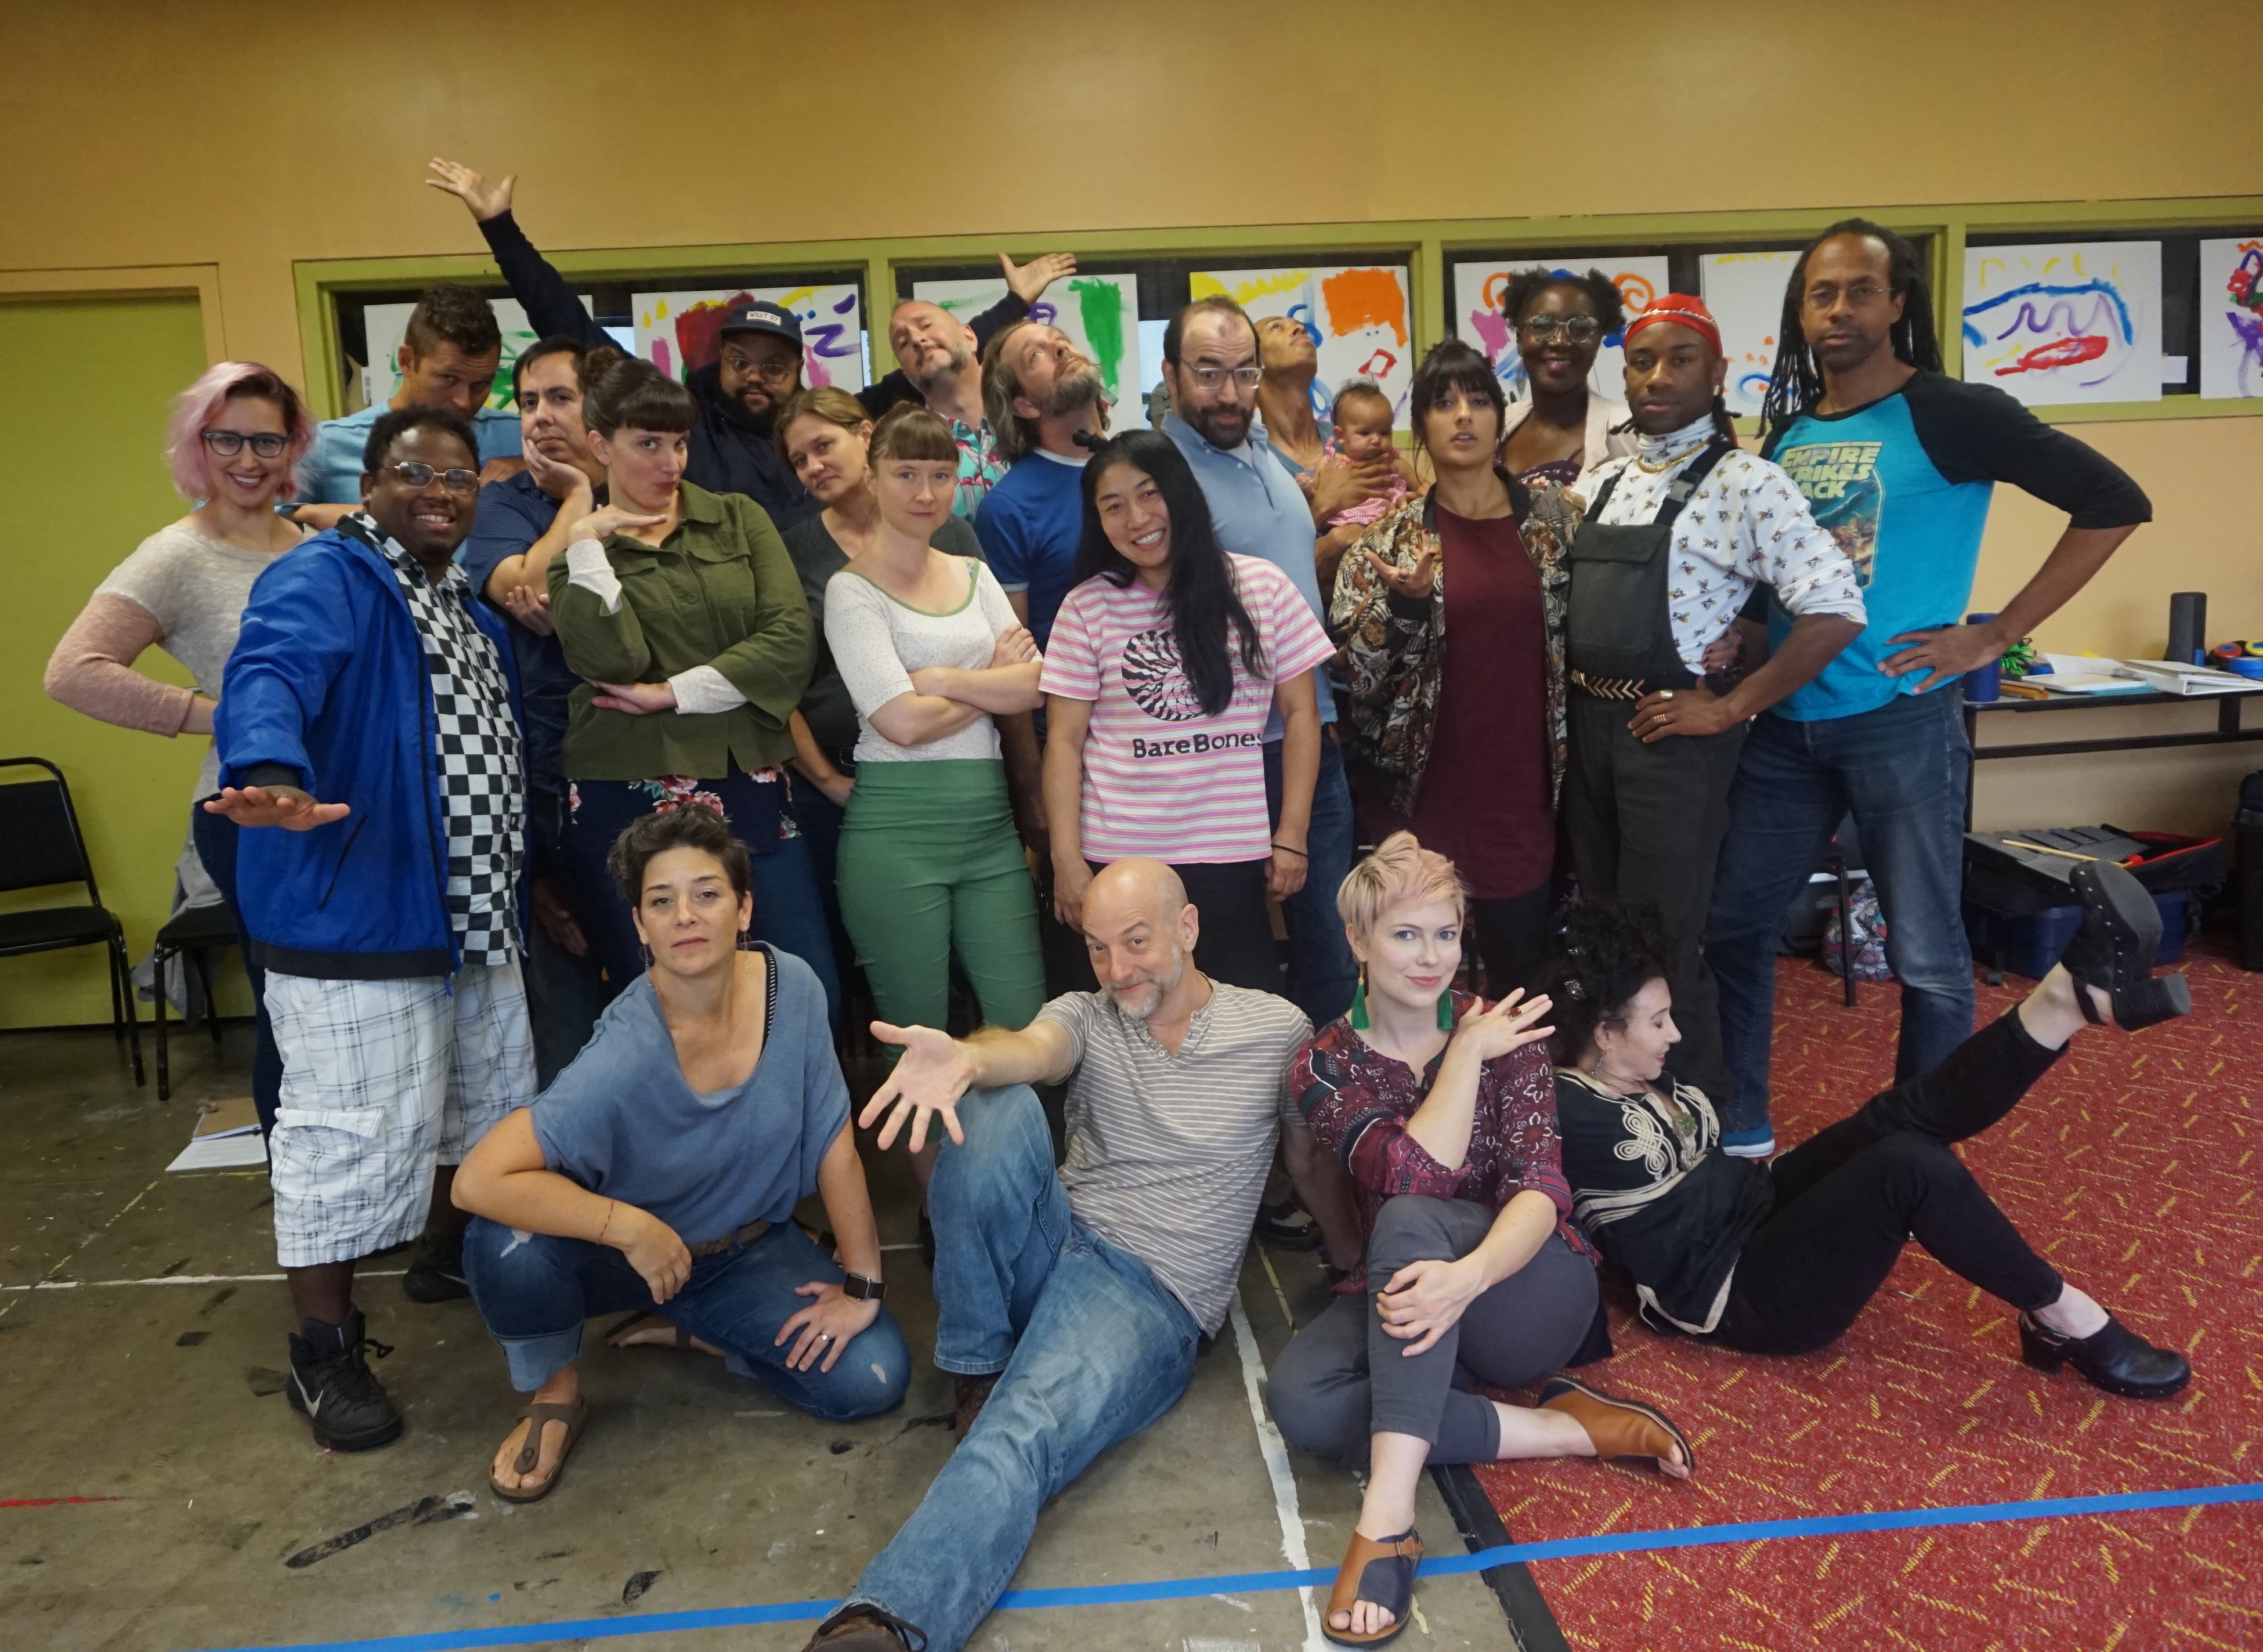 Group photo of Upstream Arts Staff and Teaching Artists in our colorful office.